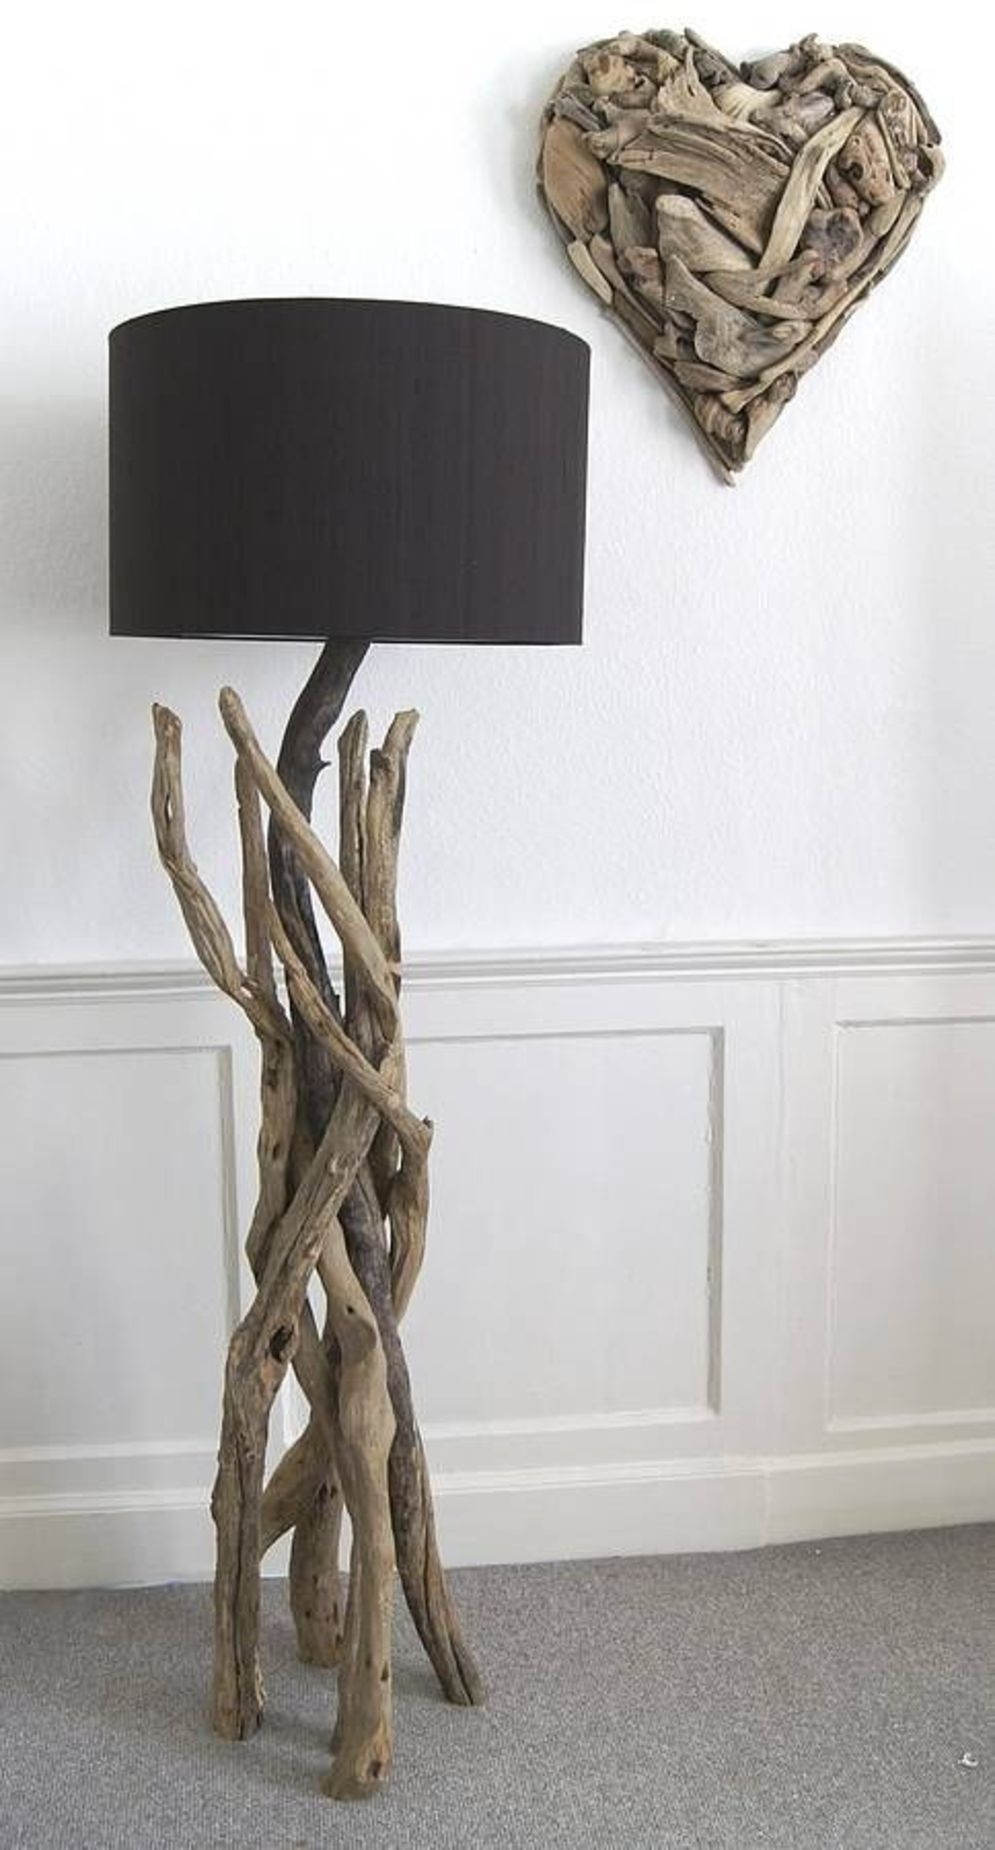 Awesome driftwood lamp stands giving authentic decoration in natural art style Image 6